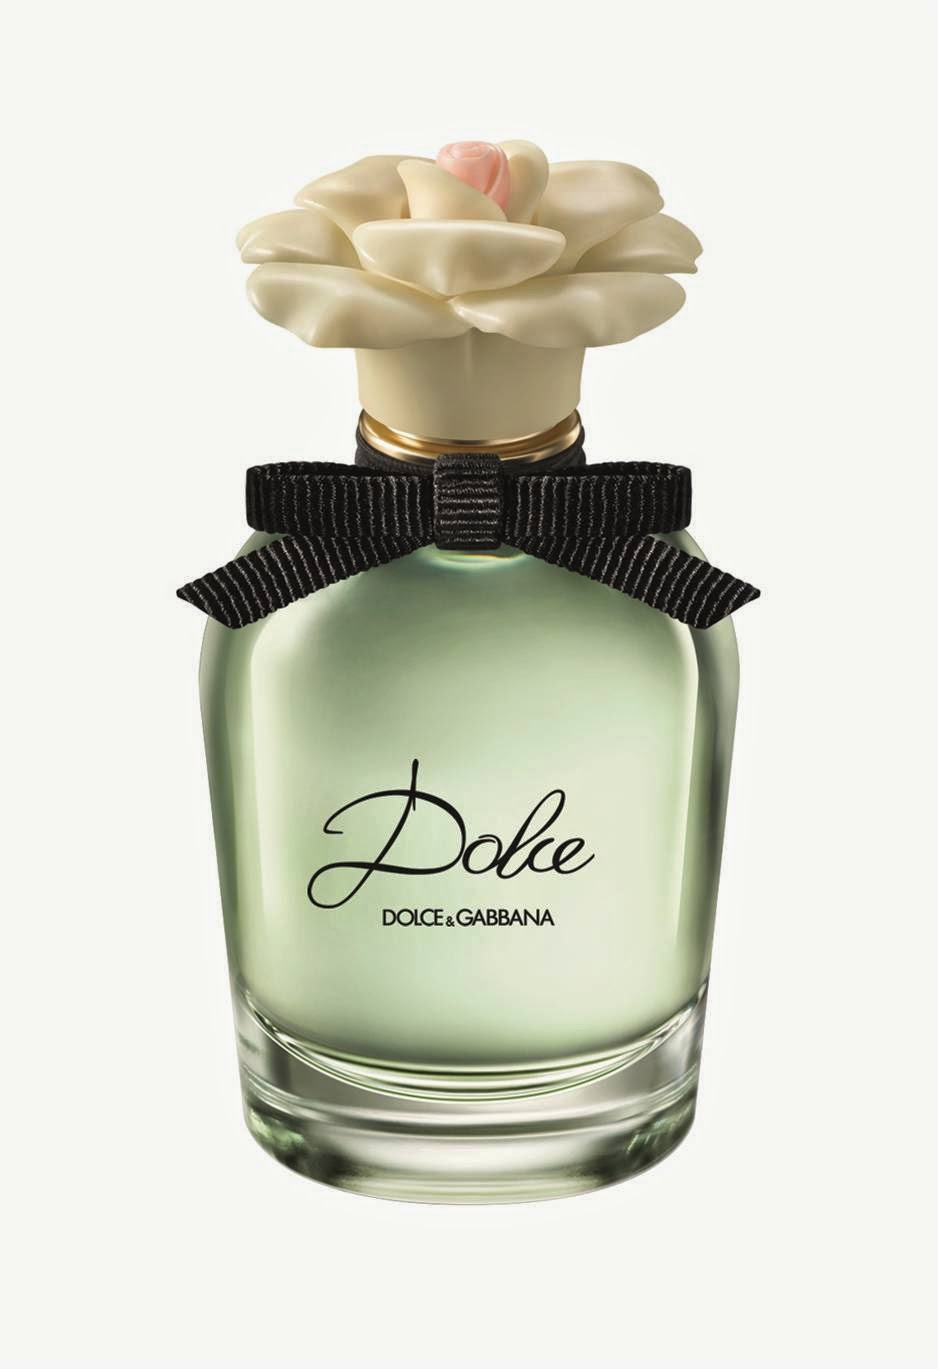 Dolce by Dolce & Gabbana, Dolce, Dolce & Gabbana, Fragrance, fragrance review